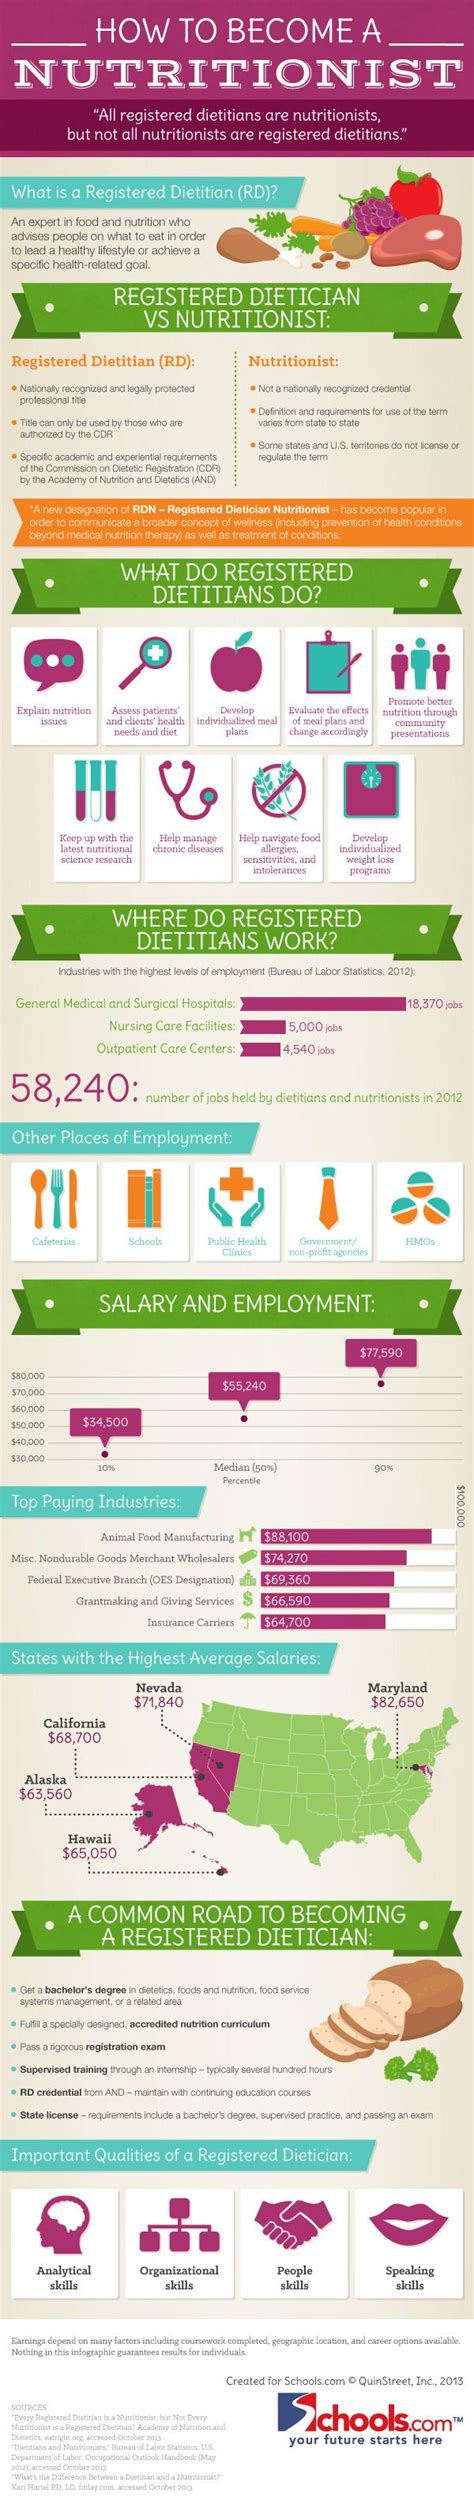 Infographic How To Become A Nutritionist  W0rk. Fremont Healthcare Center Seoul Hotels 5 Star. Title Loans In Rock Hill Sc Lease Pos System. Credit Card Acceptance Online. Microsoft Internet Filter Bug Tracking System. Northwestern Grad School Economics Major Ucla. George Mason University Social Work. Internet Service Michigan Pay Off Debt Loans. Good Samaritan College Of Nursing